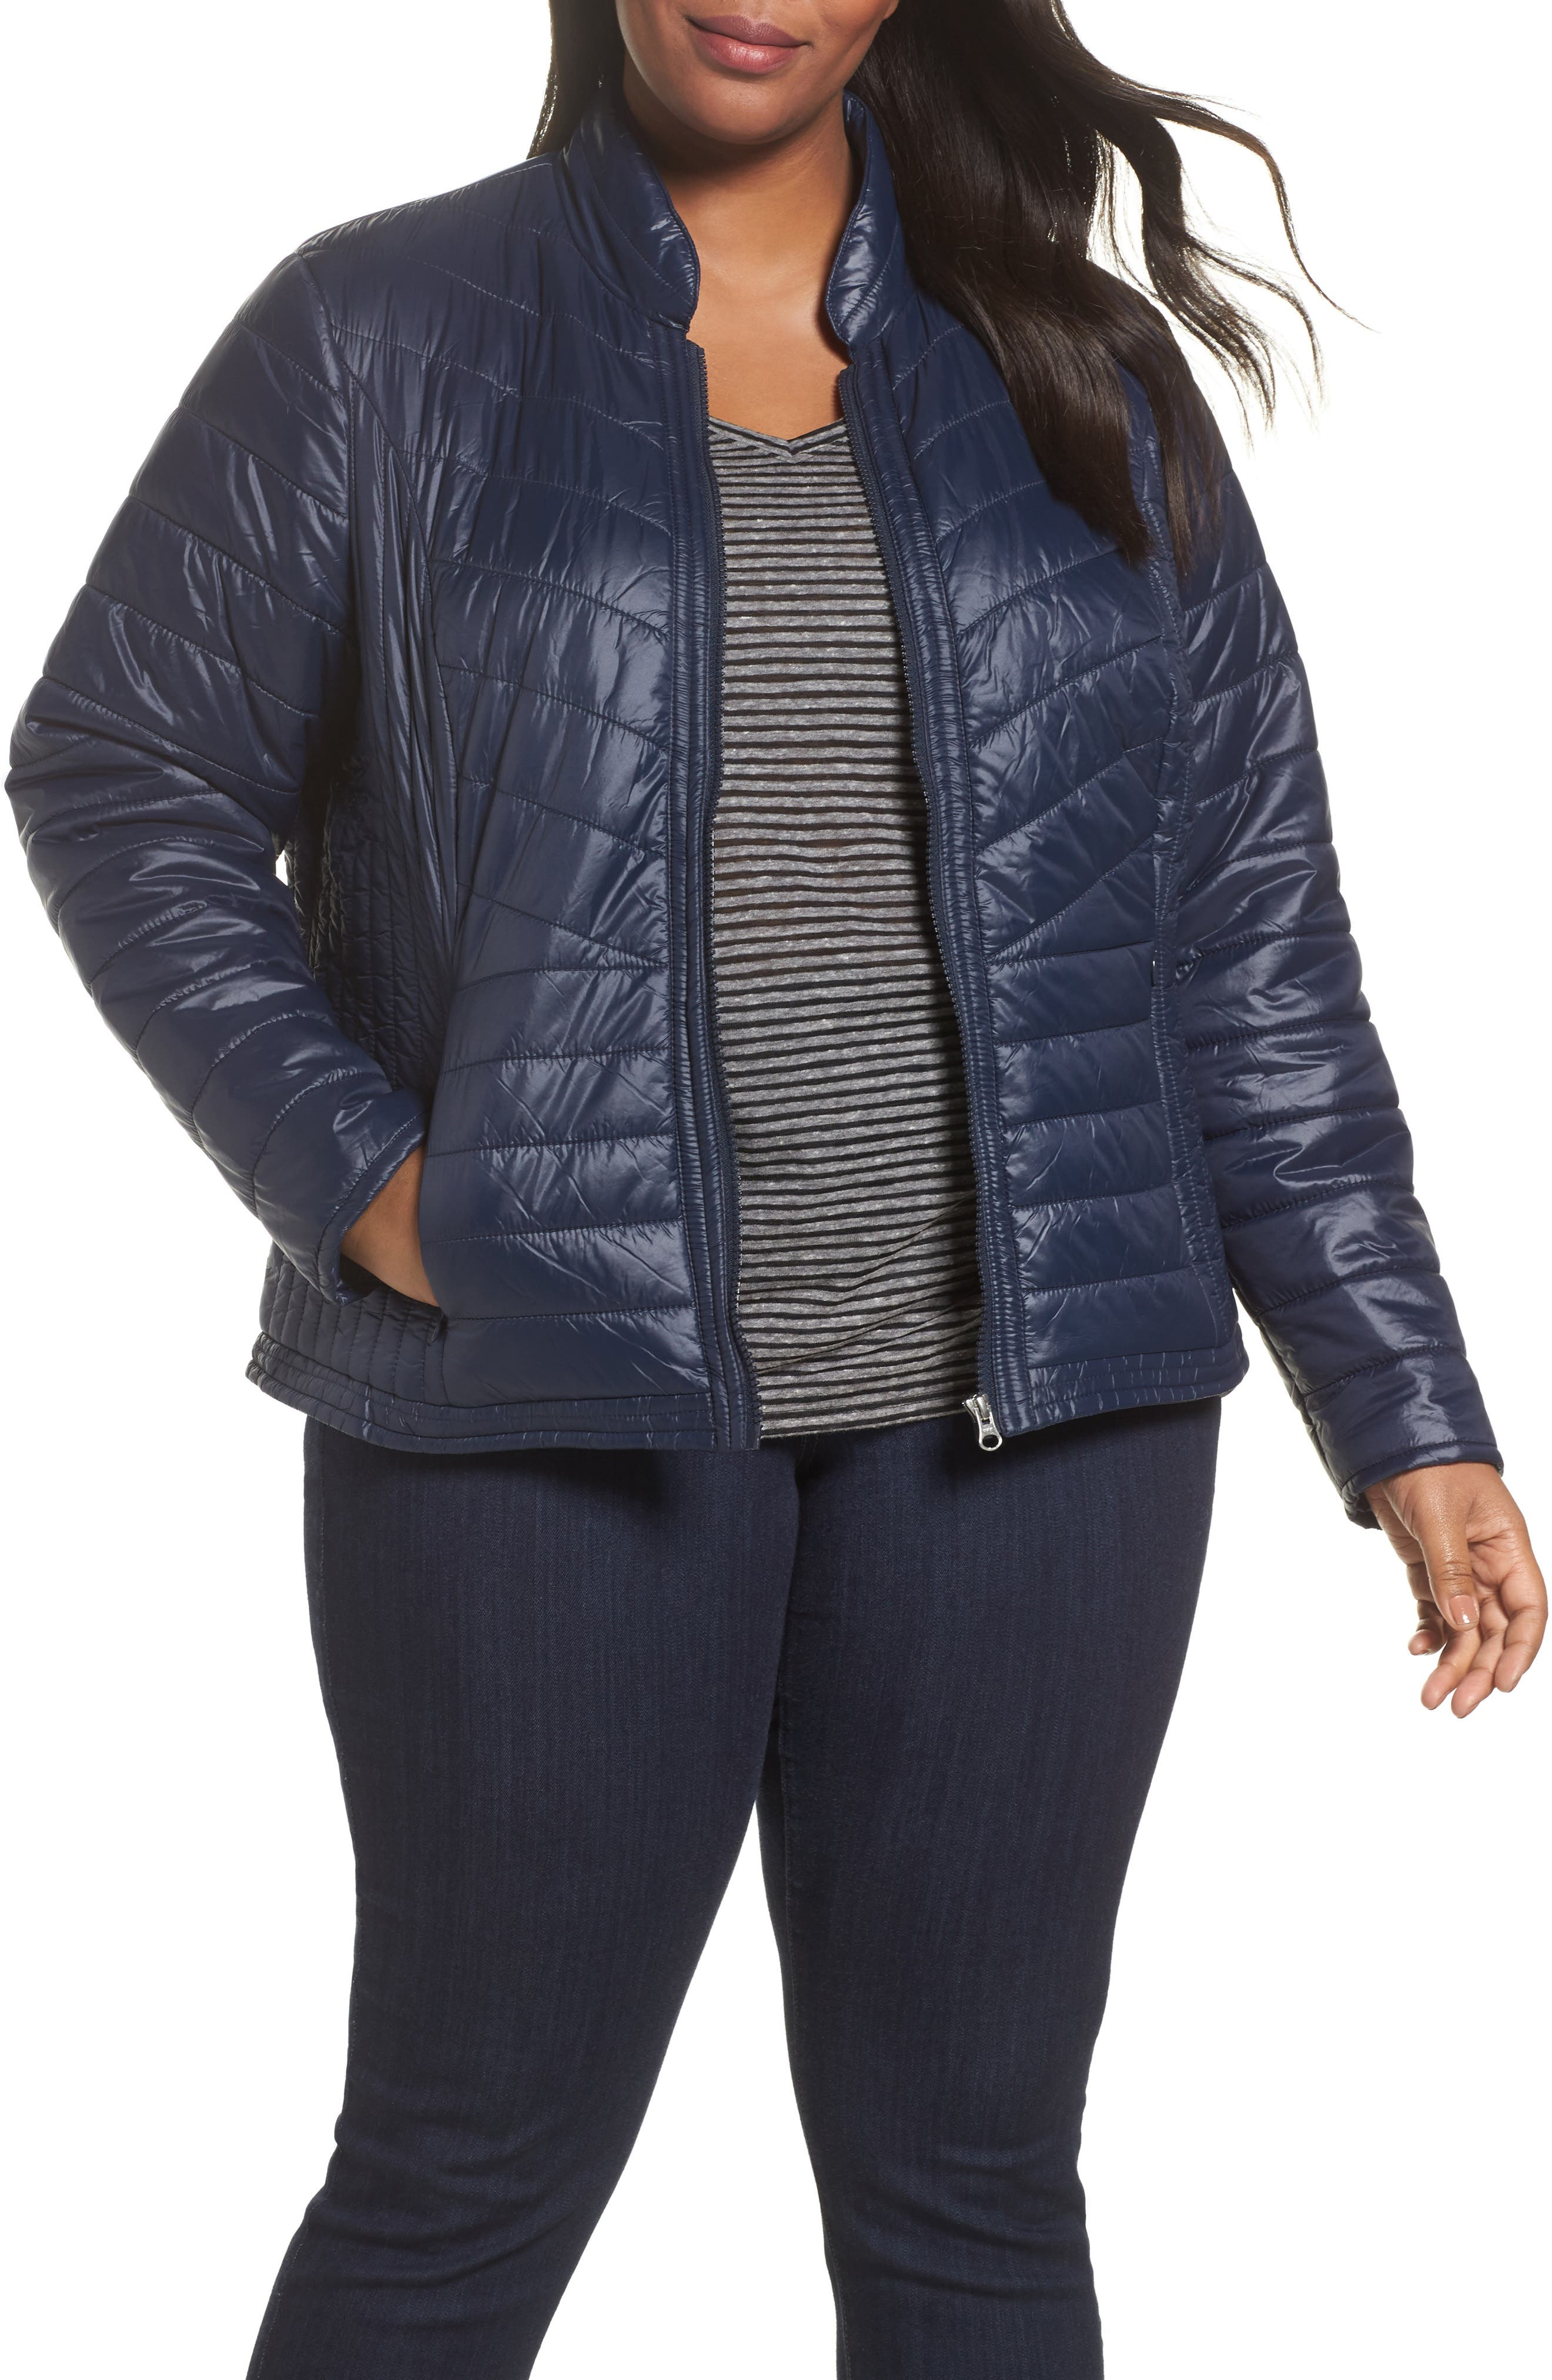 Twisted Quilted Puffer Jacket,                             Main thumbnail 1, color,                             411